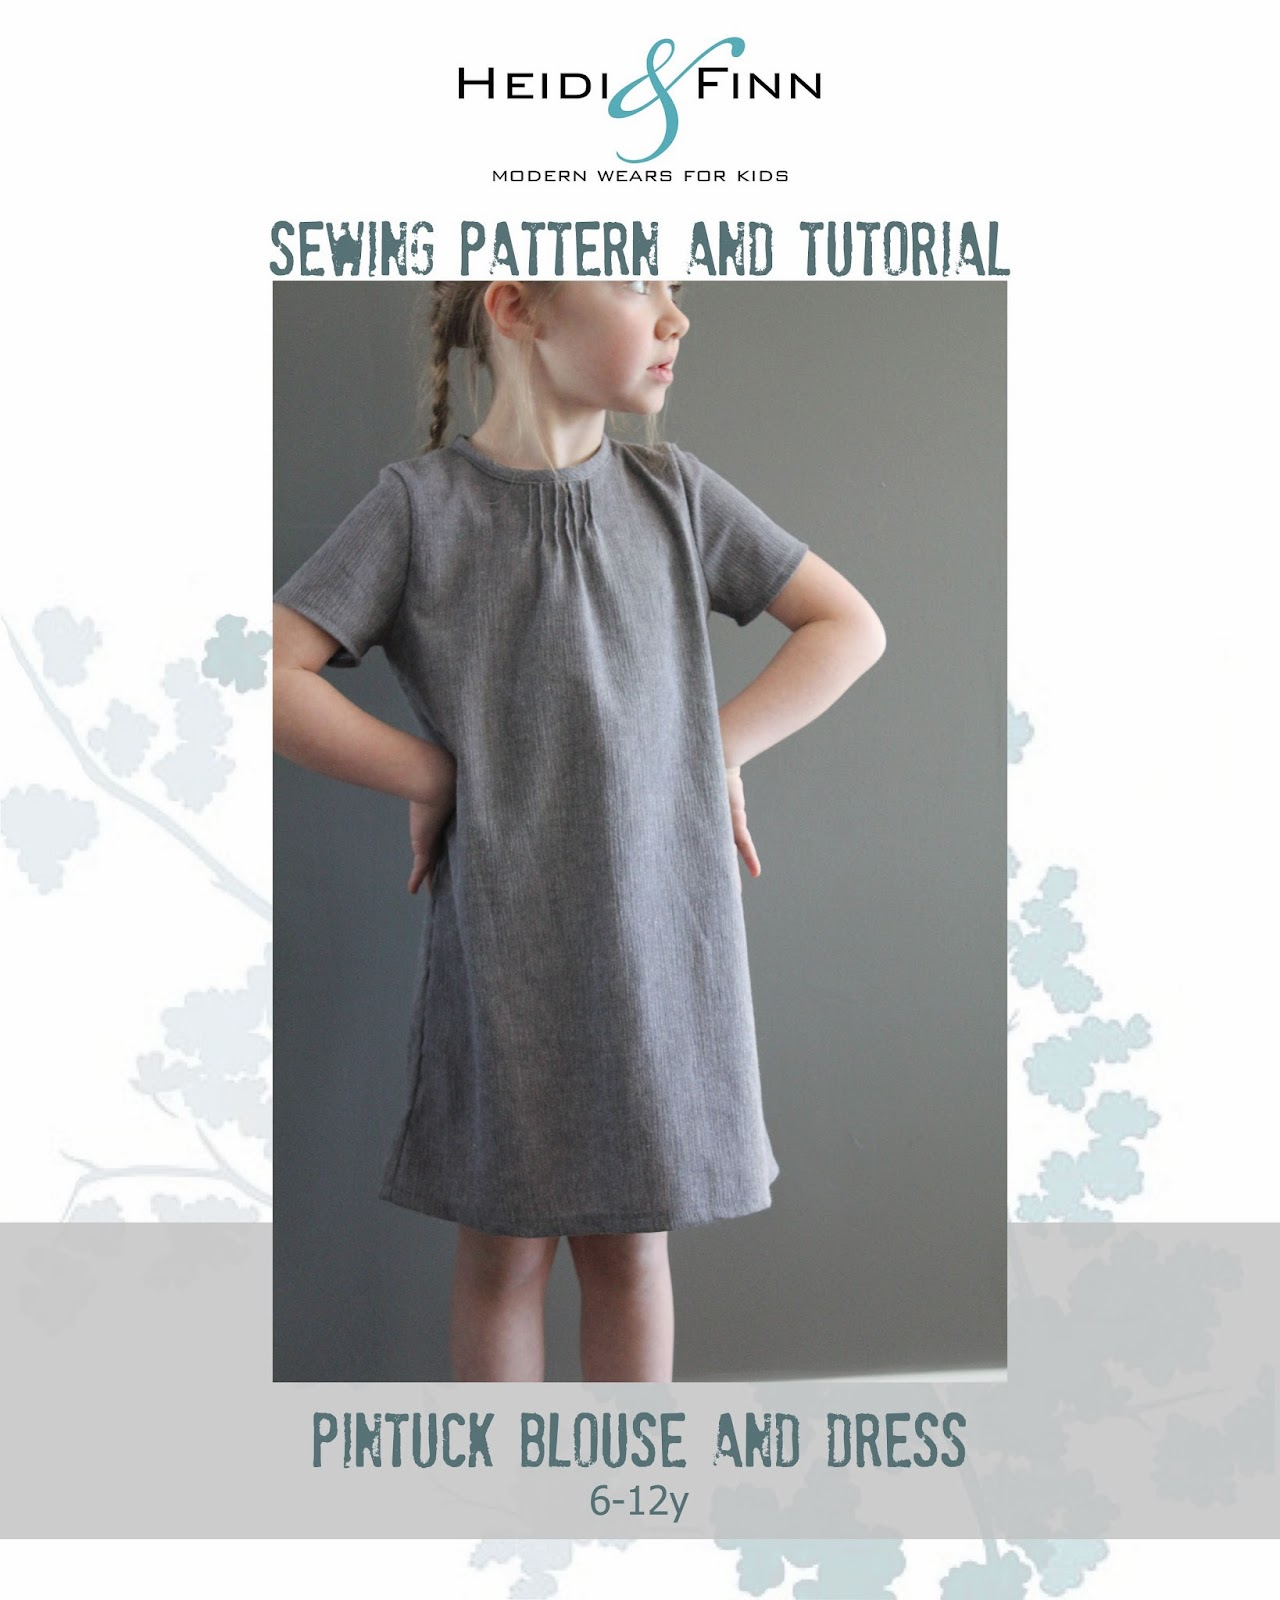 https://www.etsy.com/listing/181318141/pintuck-blouse-and-dress-pdf-pattern-and?ref=listing-shop-header-1